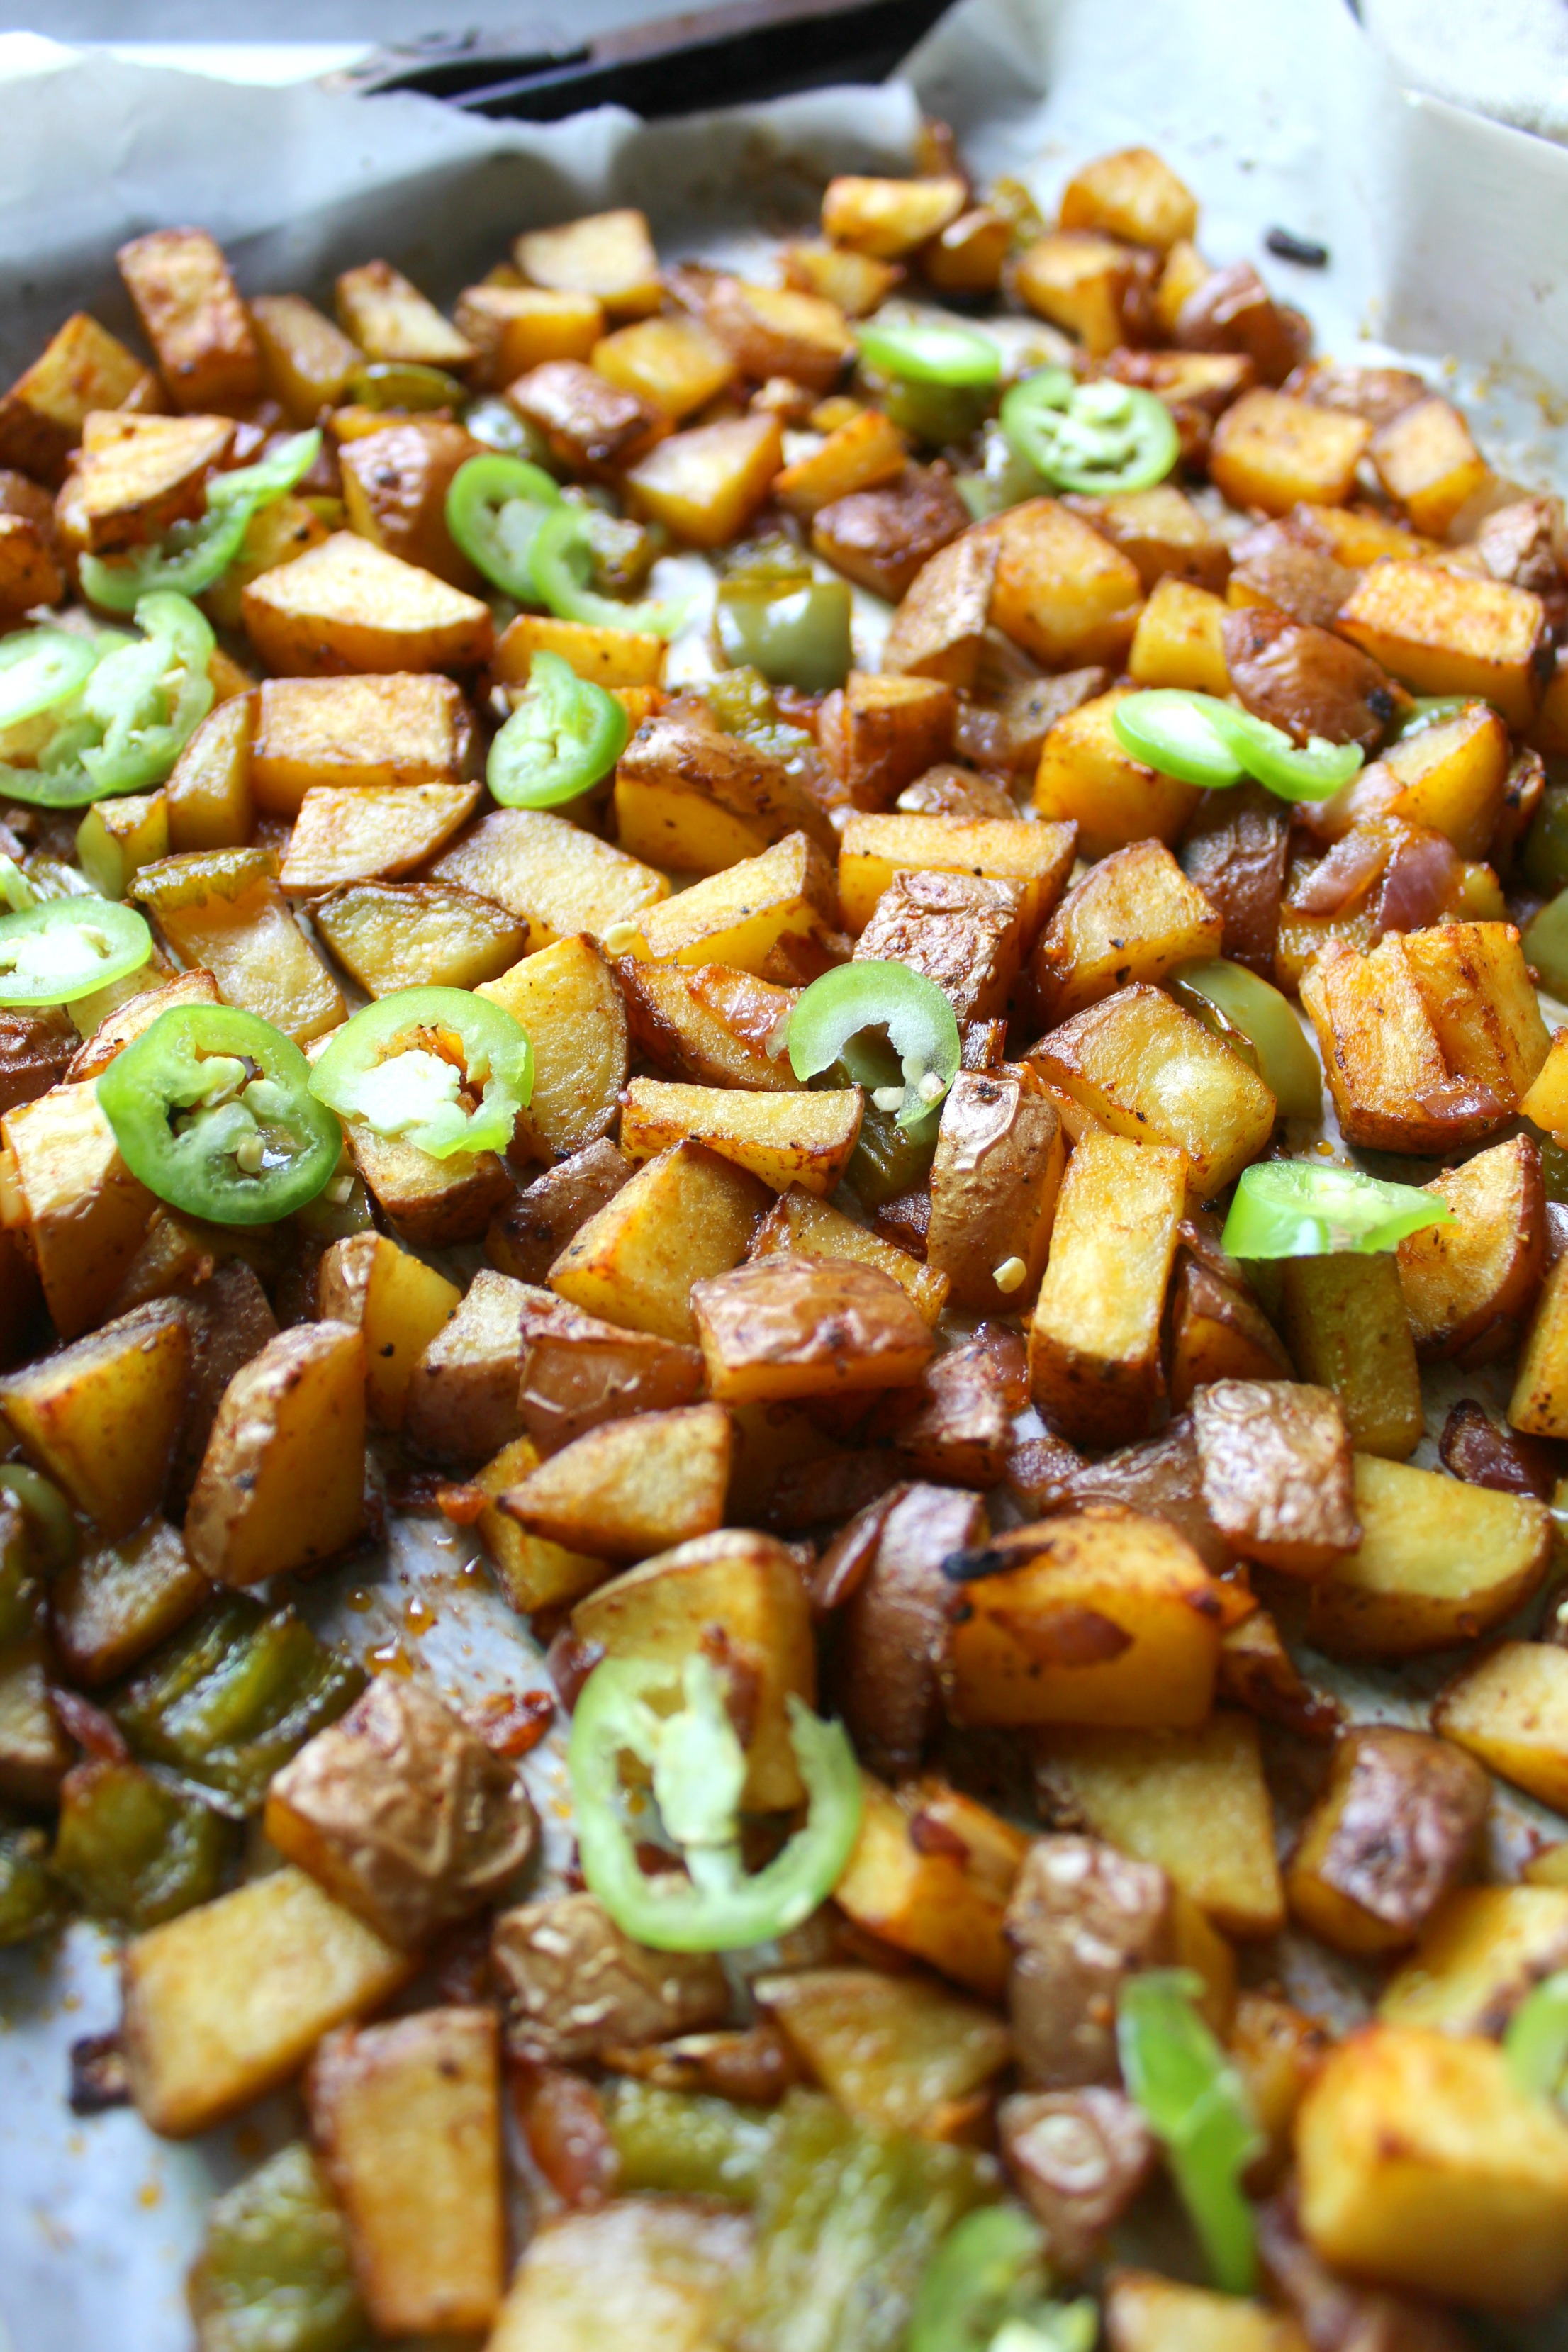 Spice up breakfast with these Sheet Pan Breakfast Potatoes. Cooked with bell peppers, onions and serrano peppers in vegan butter until crisped to perfection!   ThisSavoryVegan.com